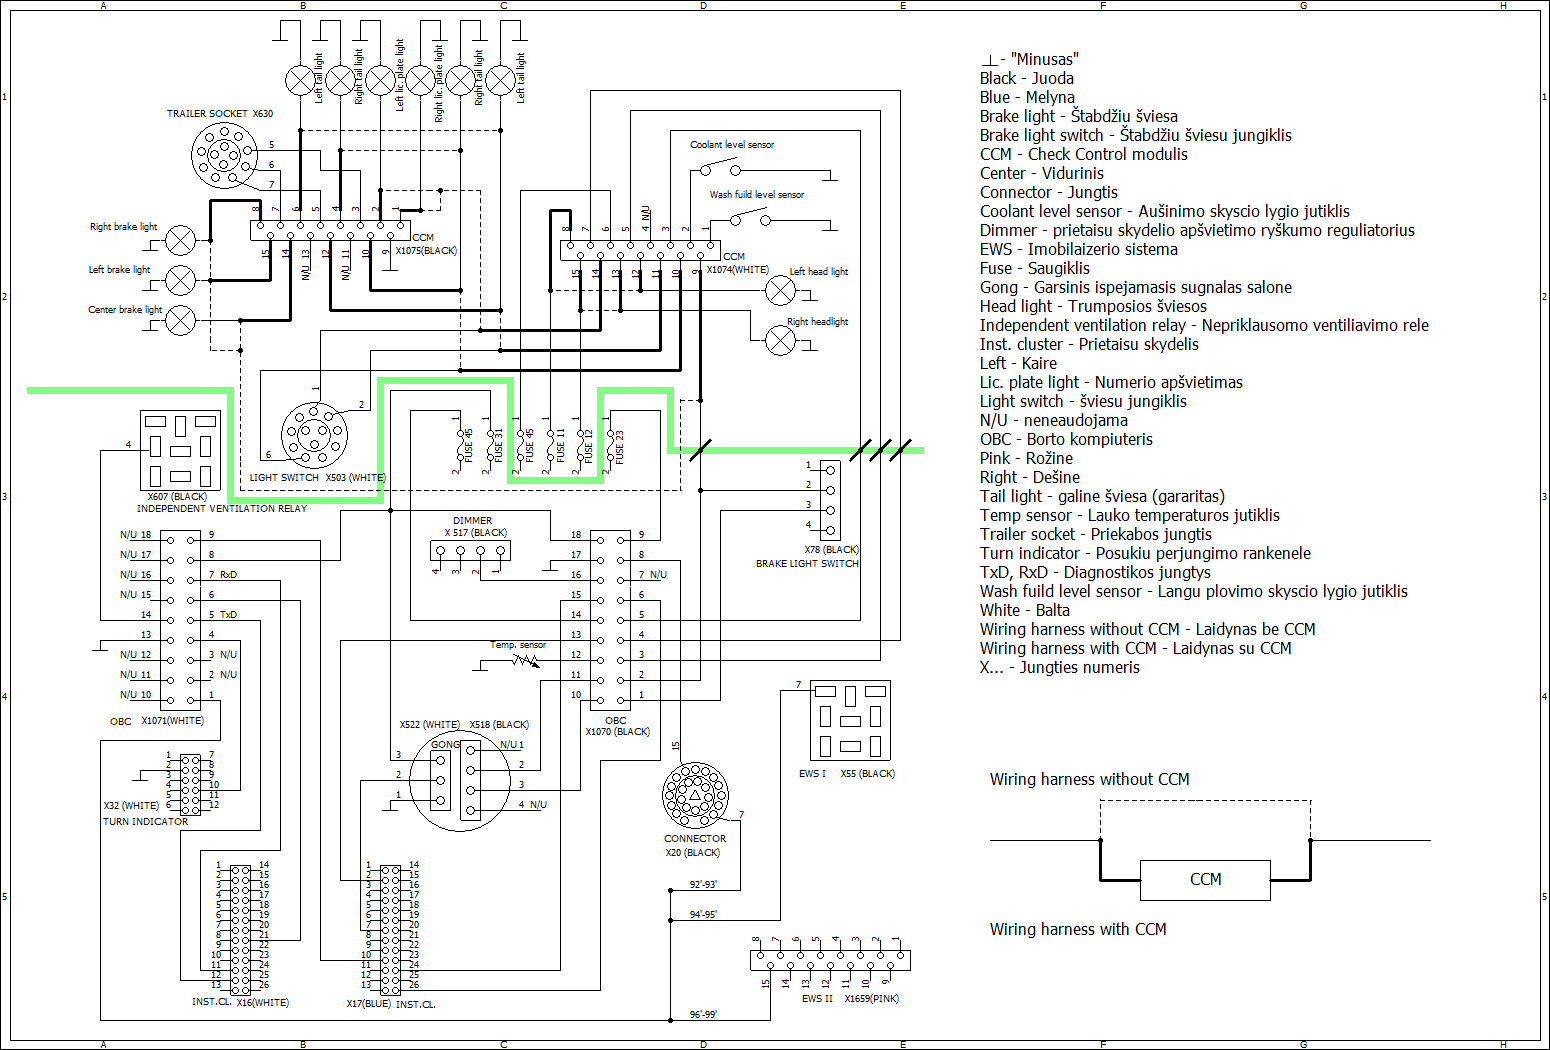 Delco Remy Voltage Regulator Wiring Diagram further P 0900c152801db3f7 together with Fzj80 To Hzj80 Conversion Tach Wiring Problem furthermore Viewtopic moreover Jaguar Xke Distributor And Ignition System Wiring Diagram. on ford 4 wire alternator diagram